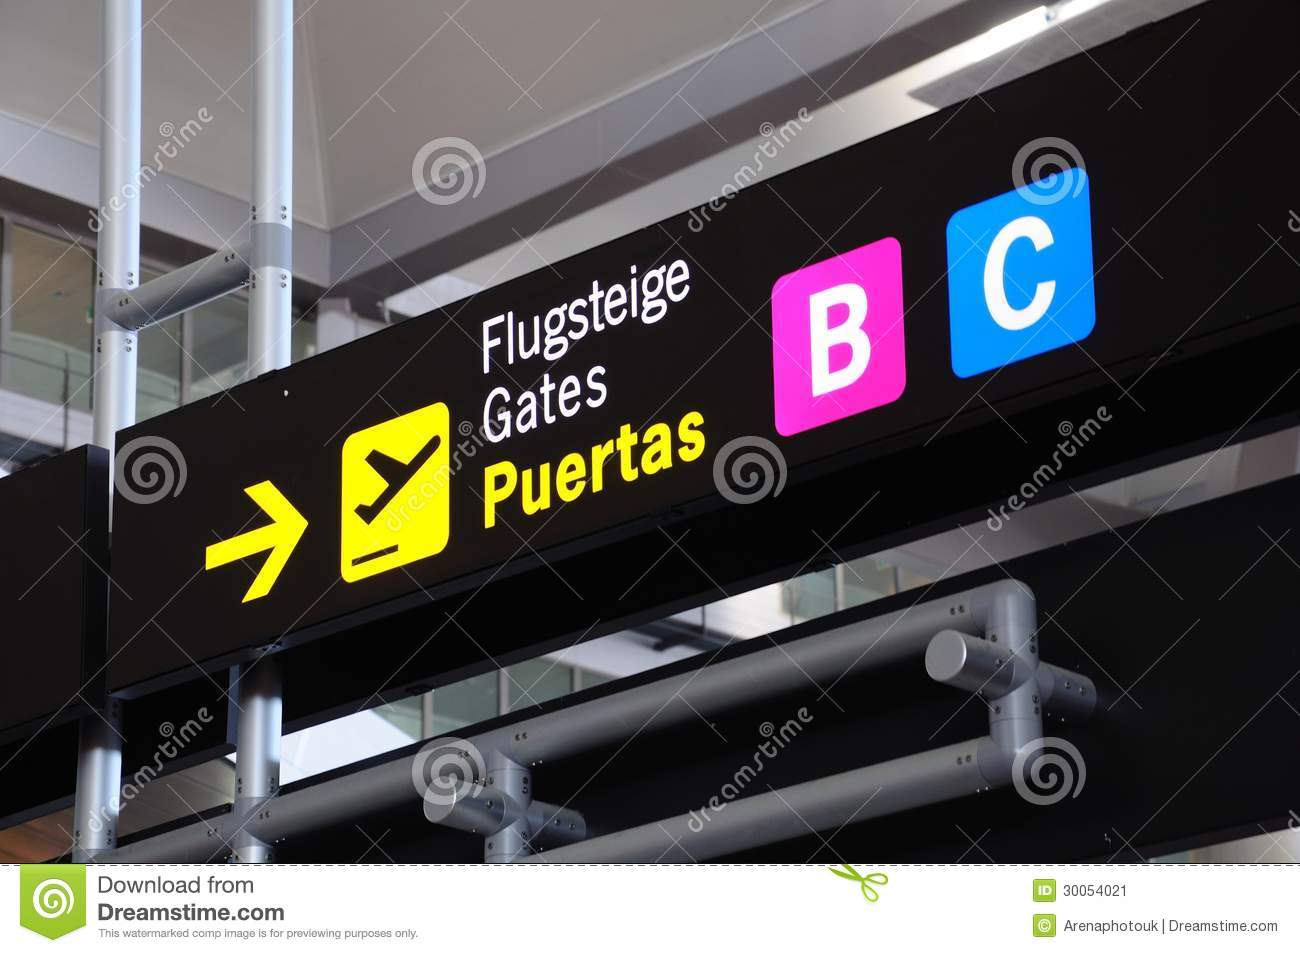 Stock Image Airside Overhead Airport Gate Signs Terminal Malaga Andalusia Spain Western Europe Image30054021 on 1